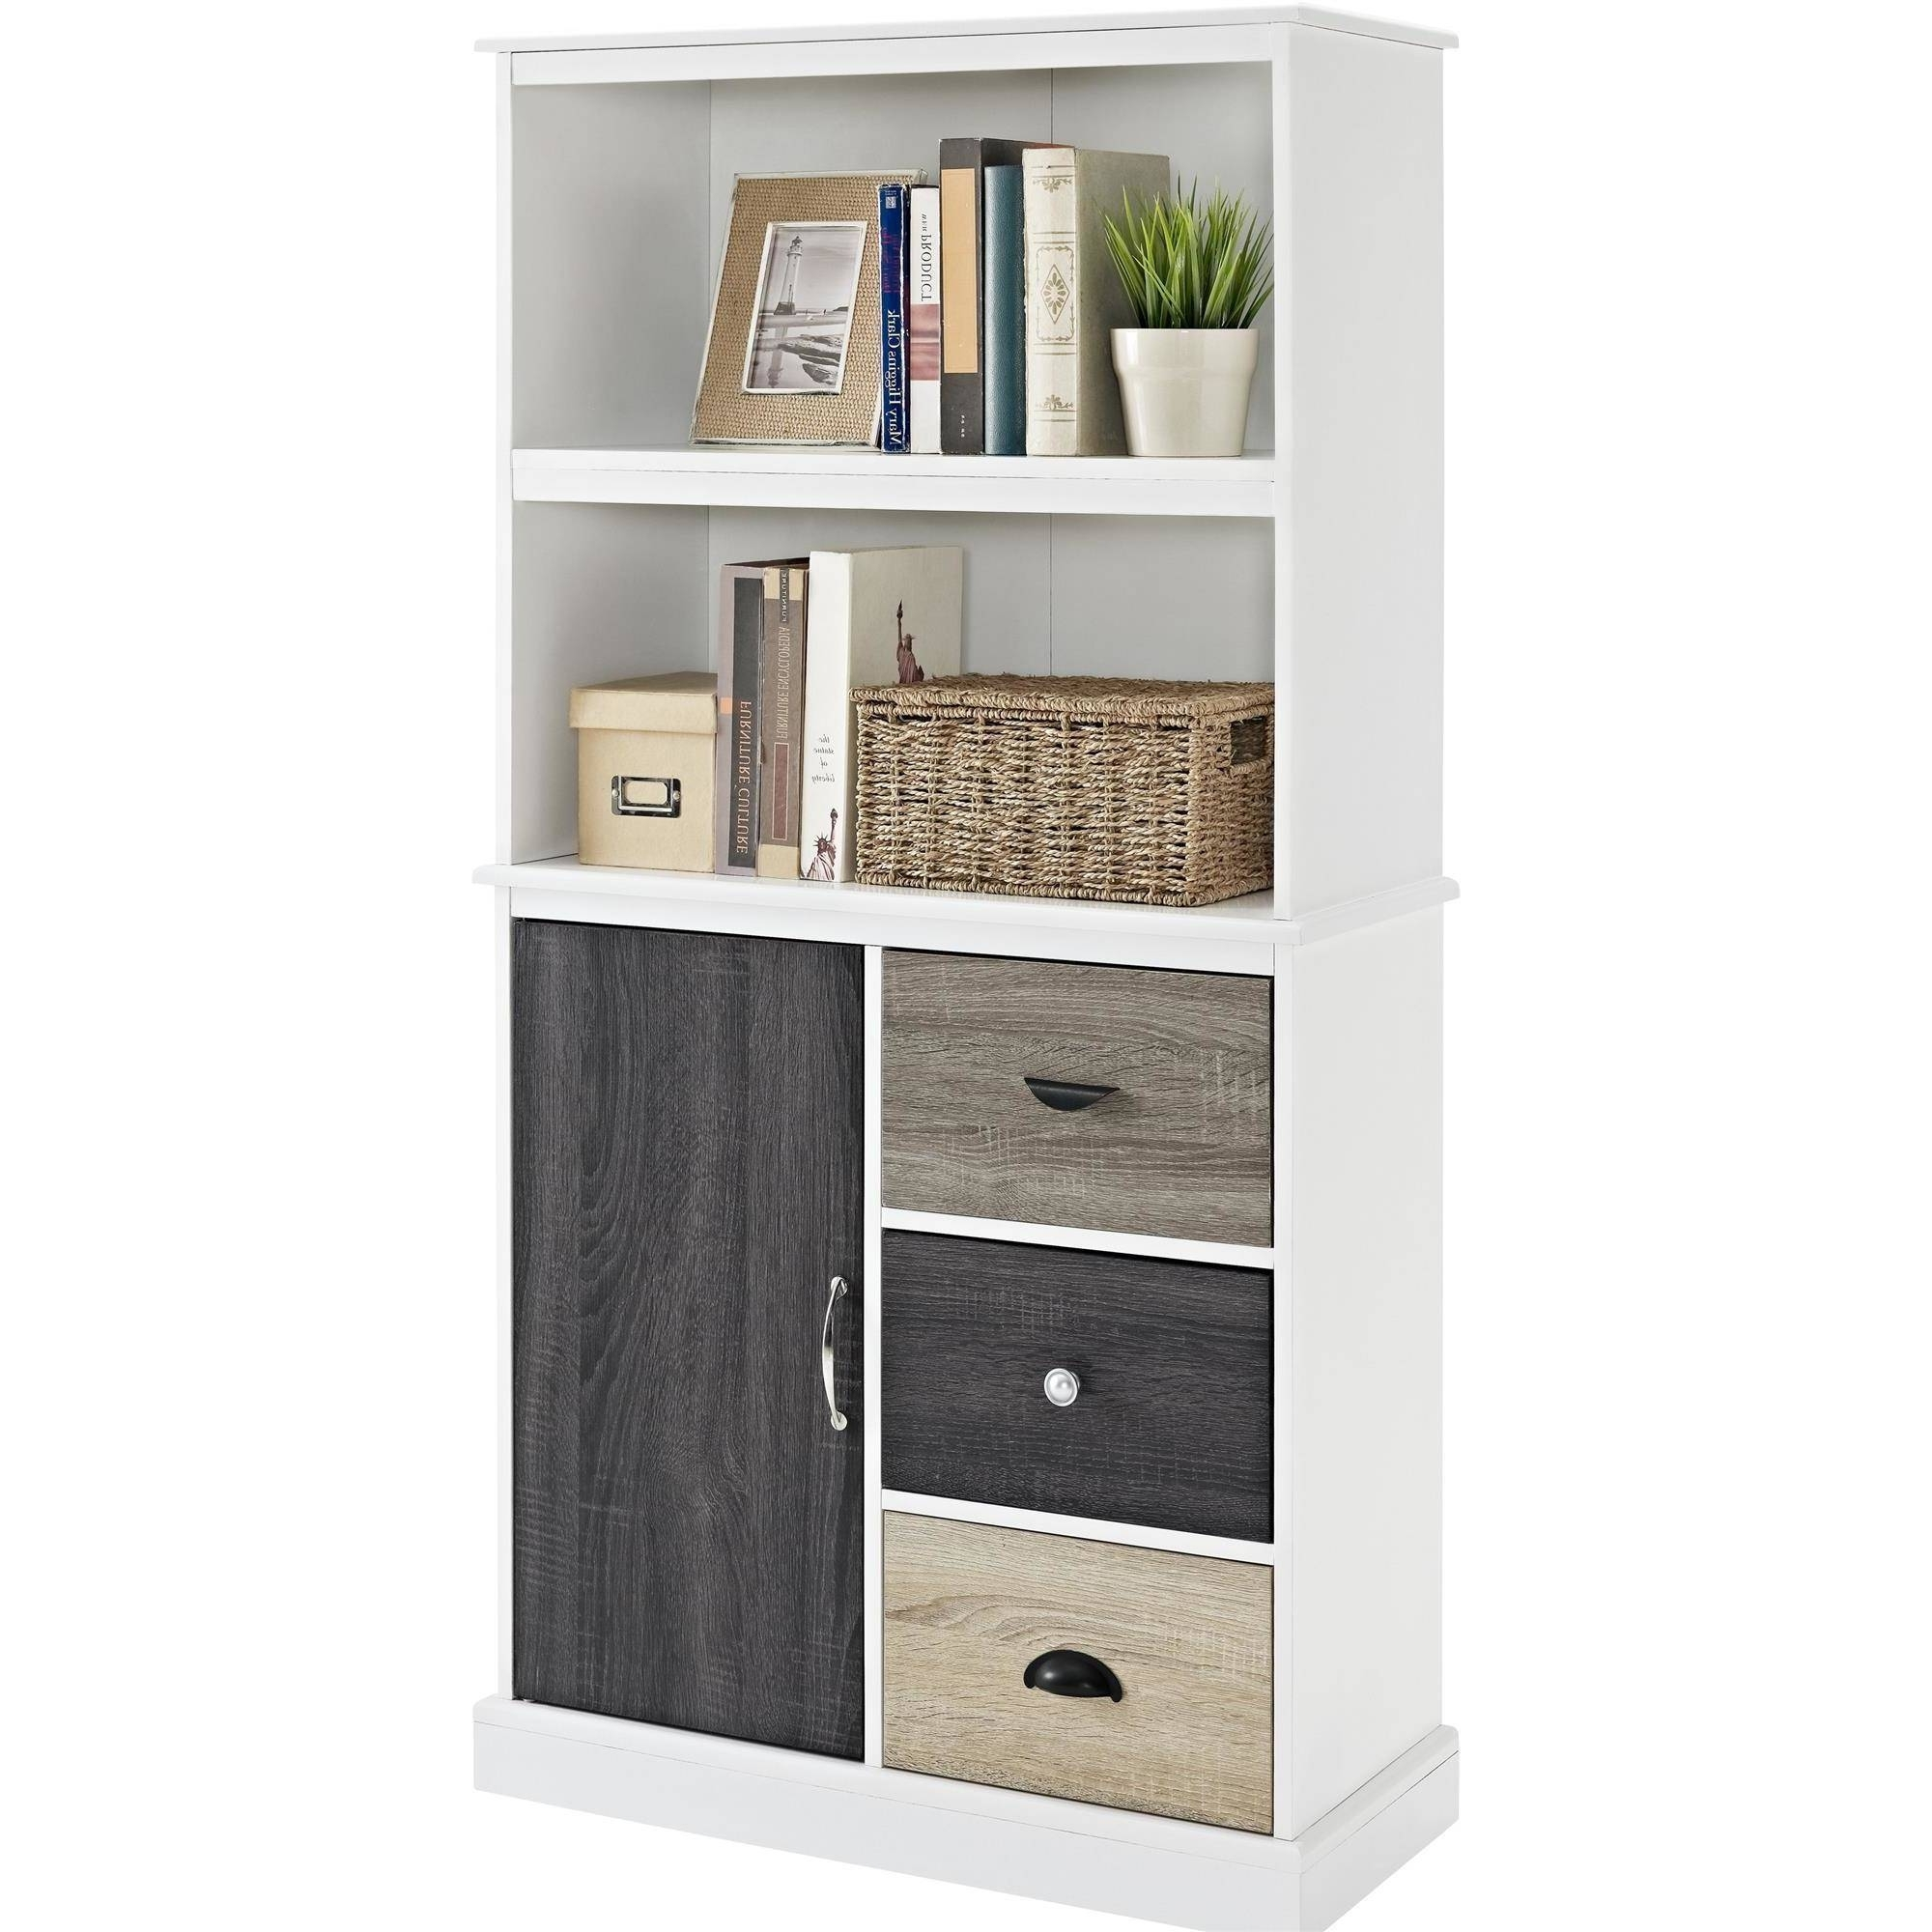 Most Popular Storage Bookcases With Regard To Ameriwood Home Mercer Storage Bookcase With Multicolored Door And (View 2 of 15)